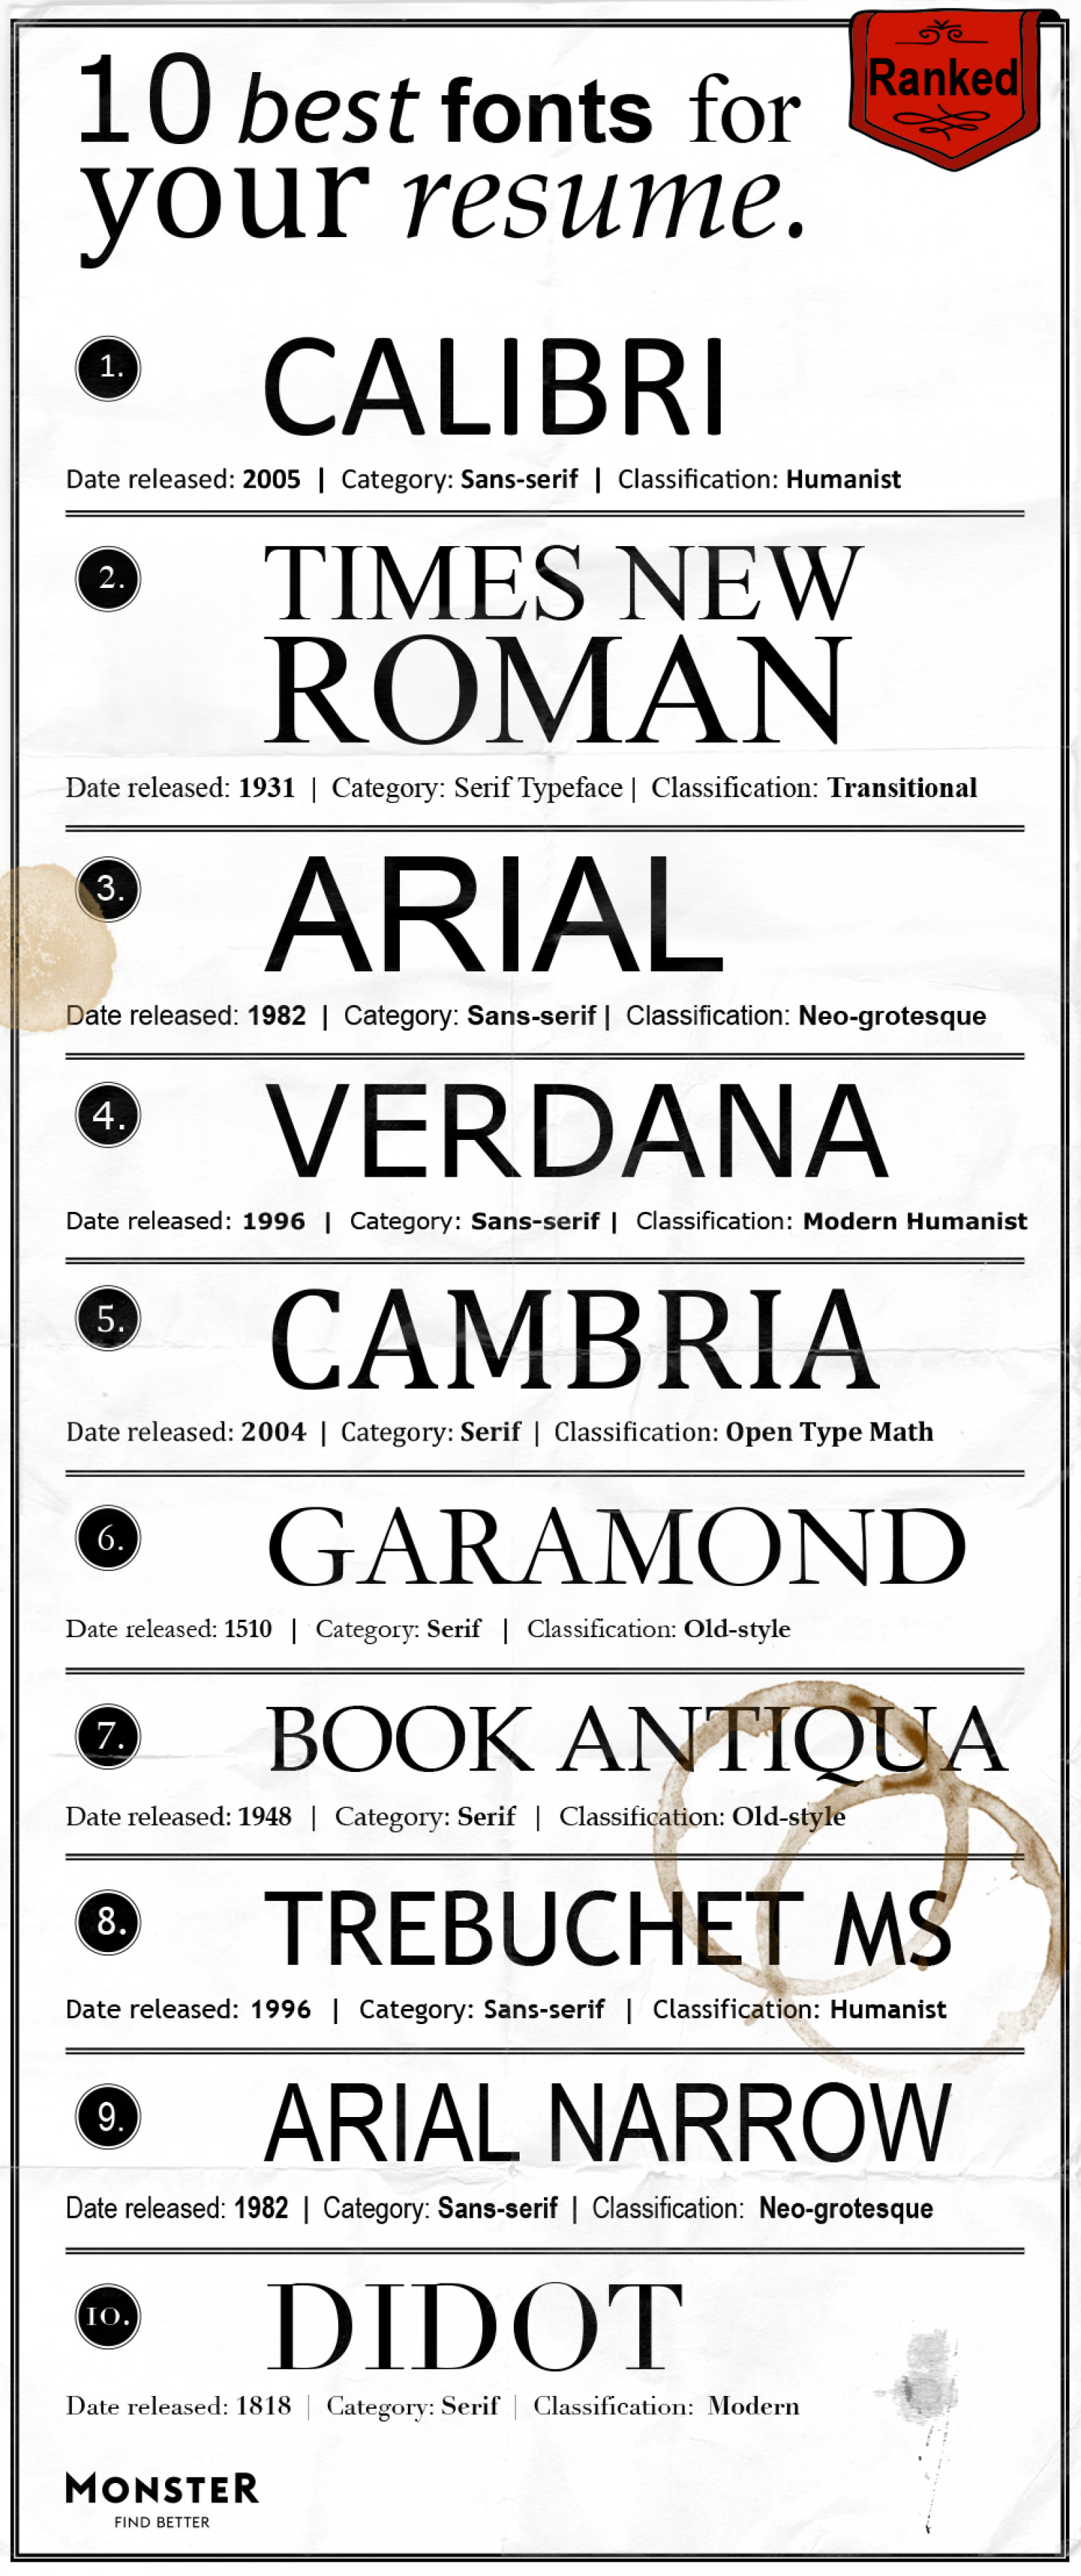 Best Font For A Resume The Best Fonts For Your Resume Ranked  Visual.ly